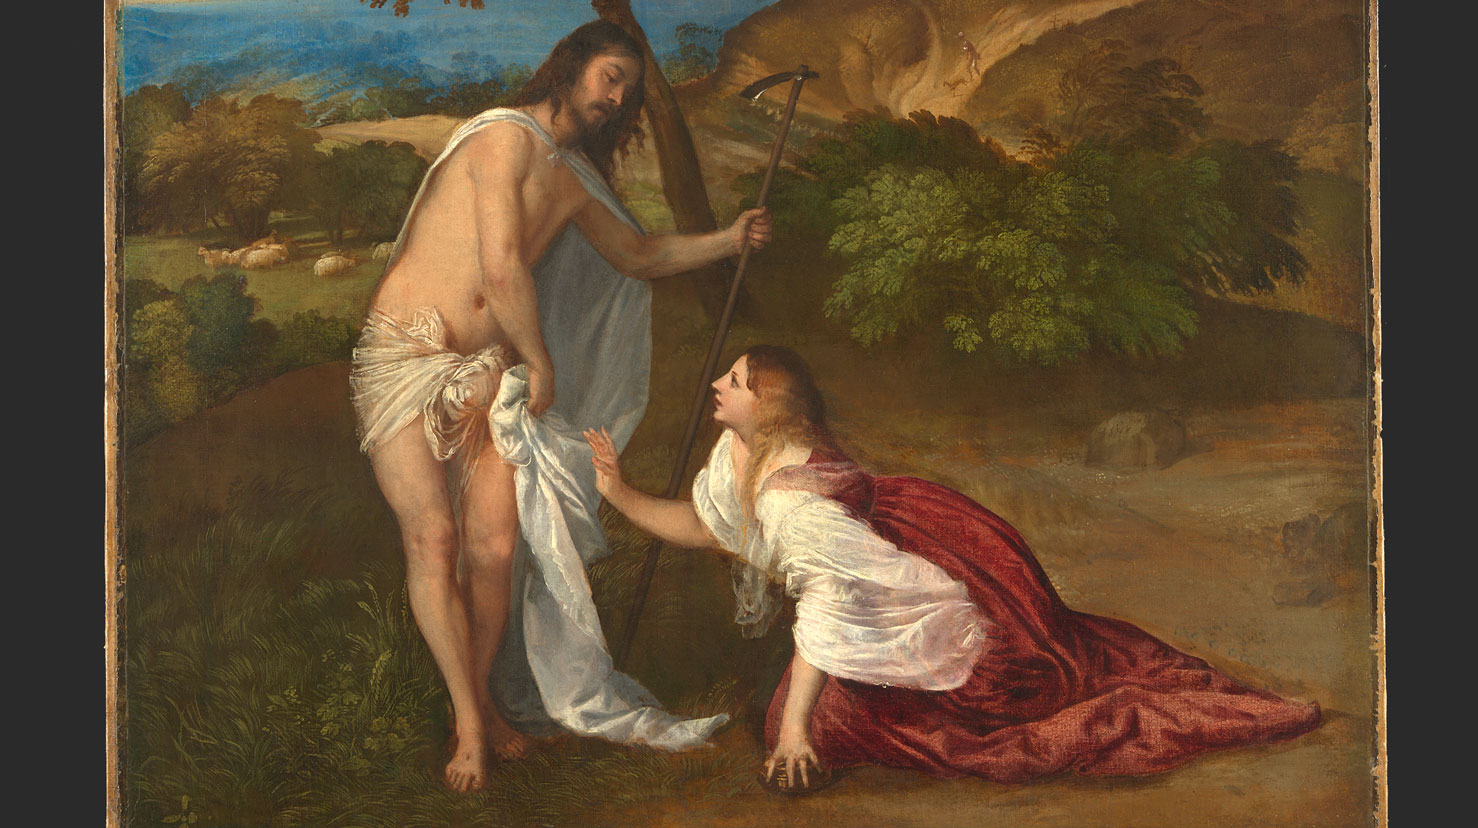 Titian. Noli me Tangere. © The National Gallery, London. Bequeathed by Samuel Rogers, 1856.